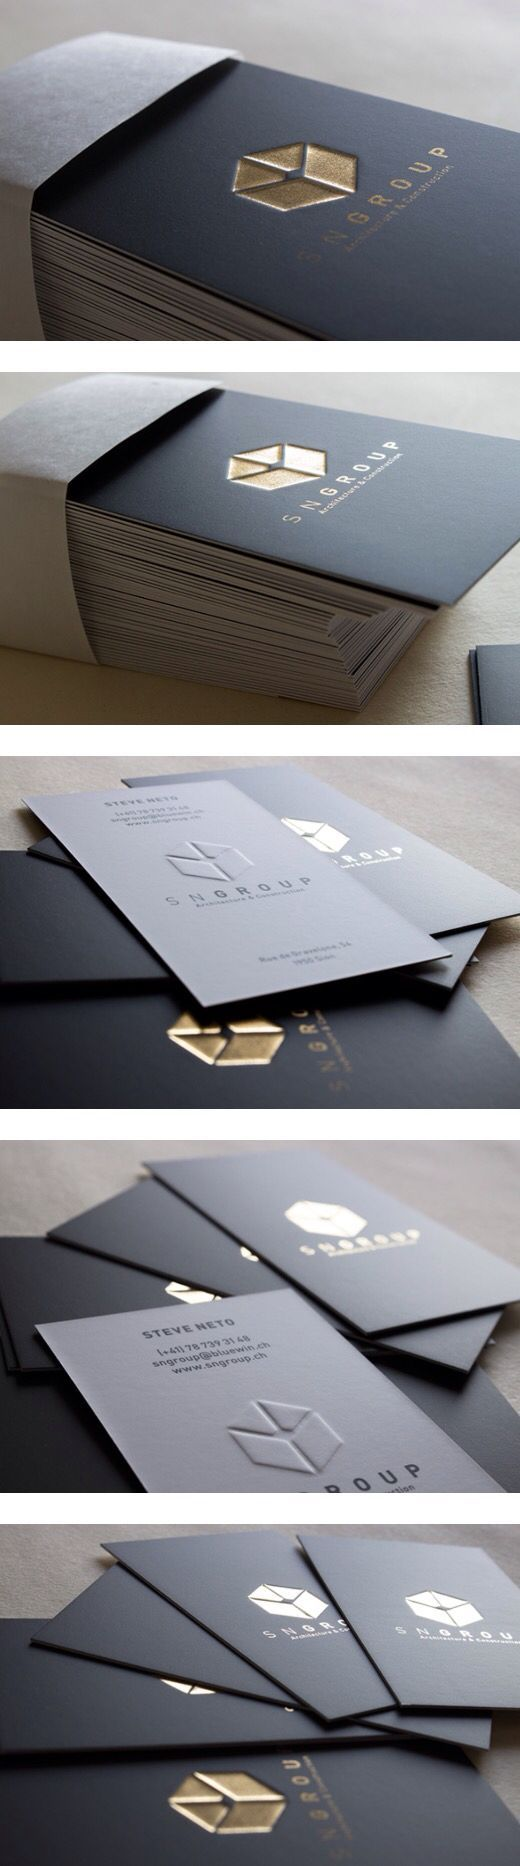 Best 25 construction business cards ideas on pinterest business sn group architecture construction on behance construction brandingconstruction company logoconstruction business cardsconstruction magicingreecefo Images